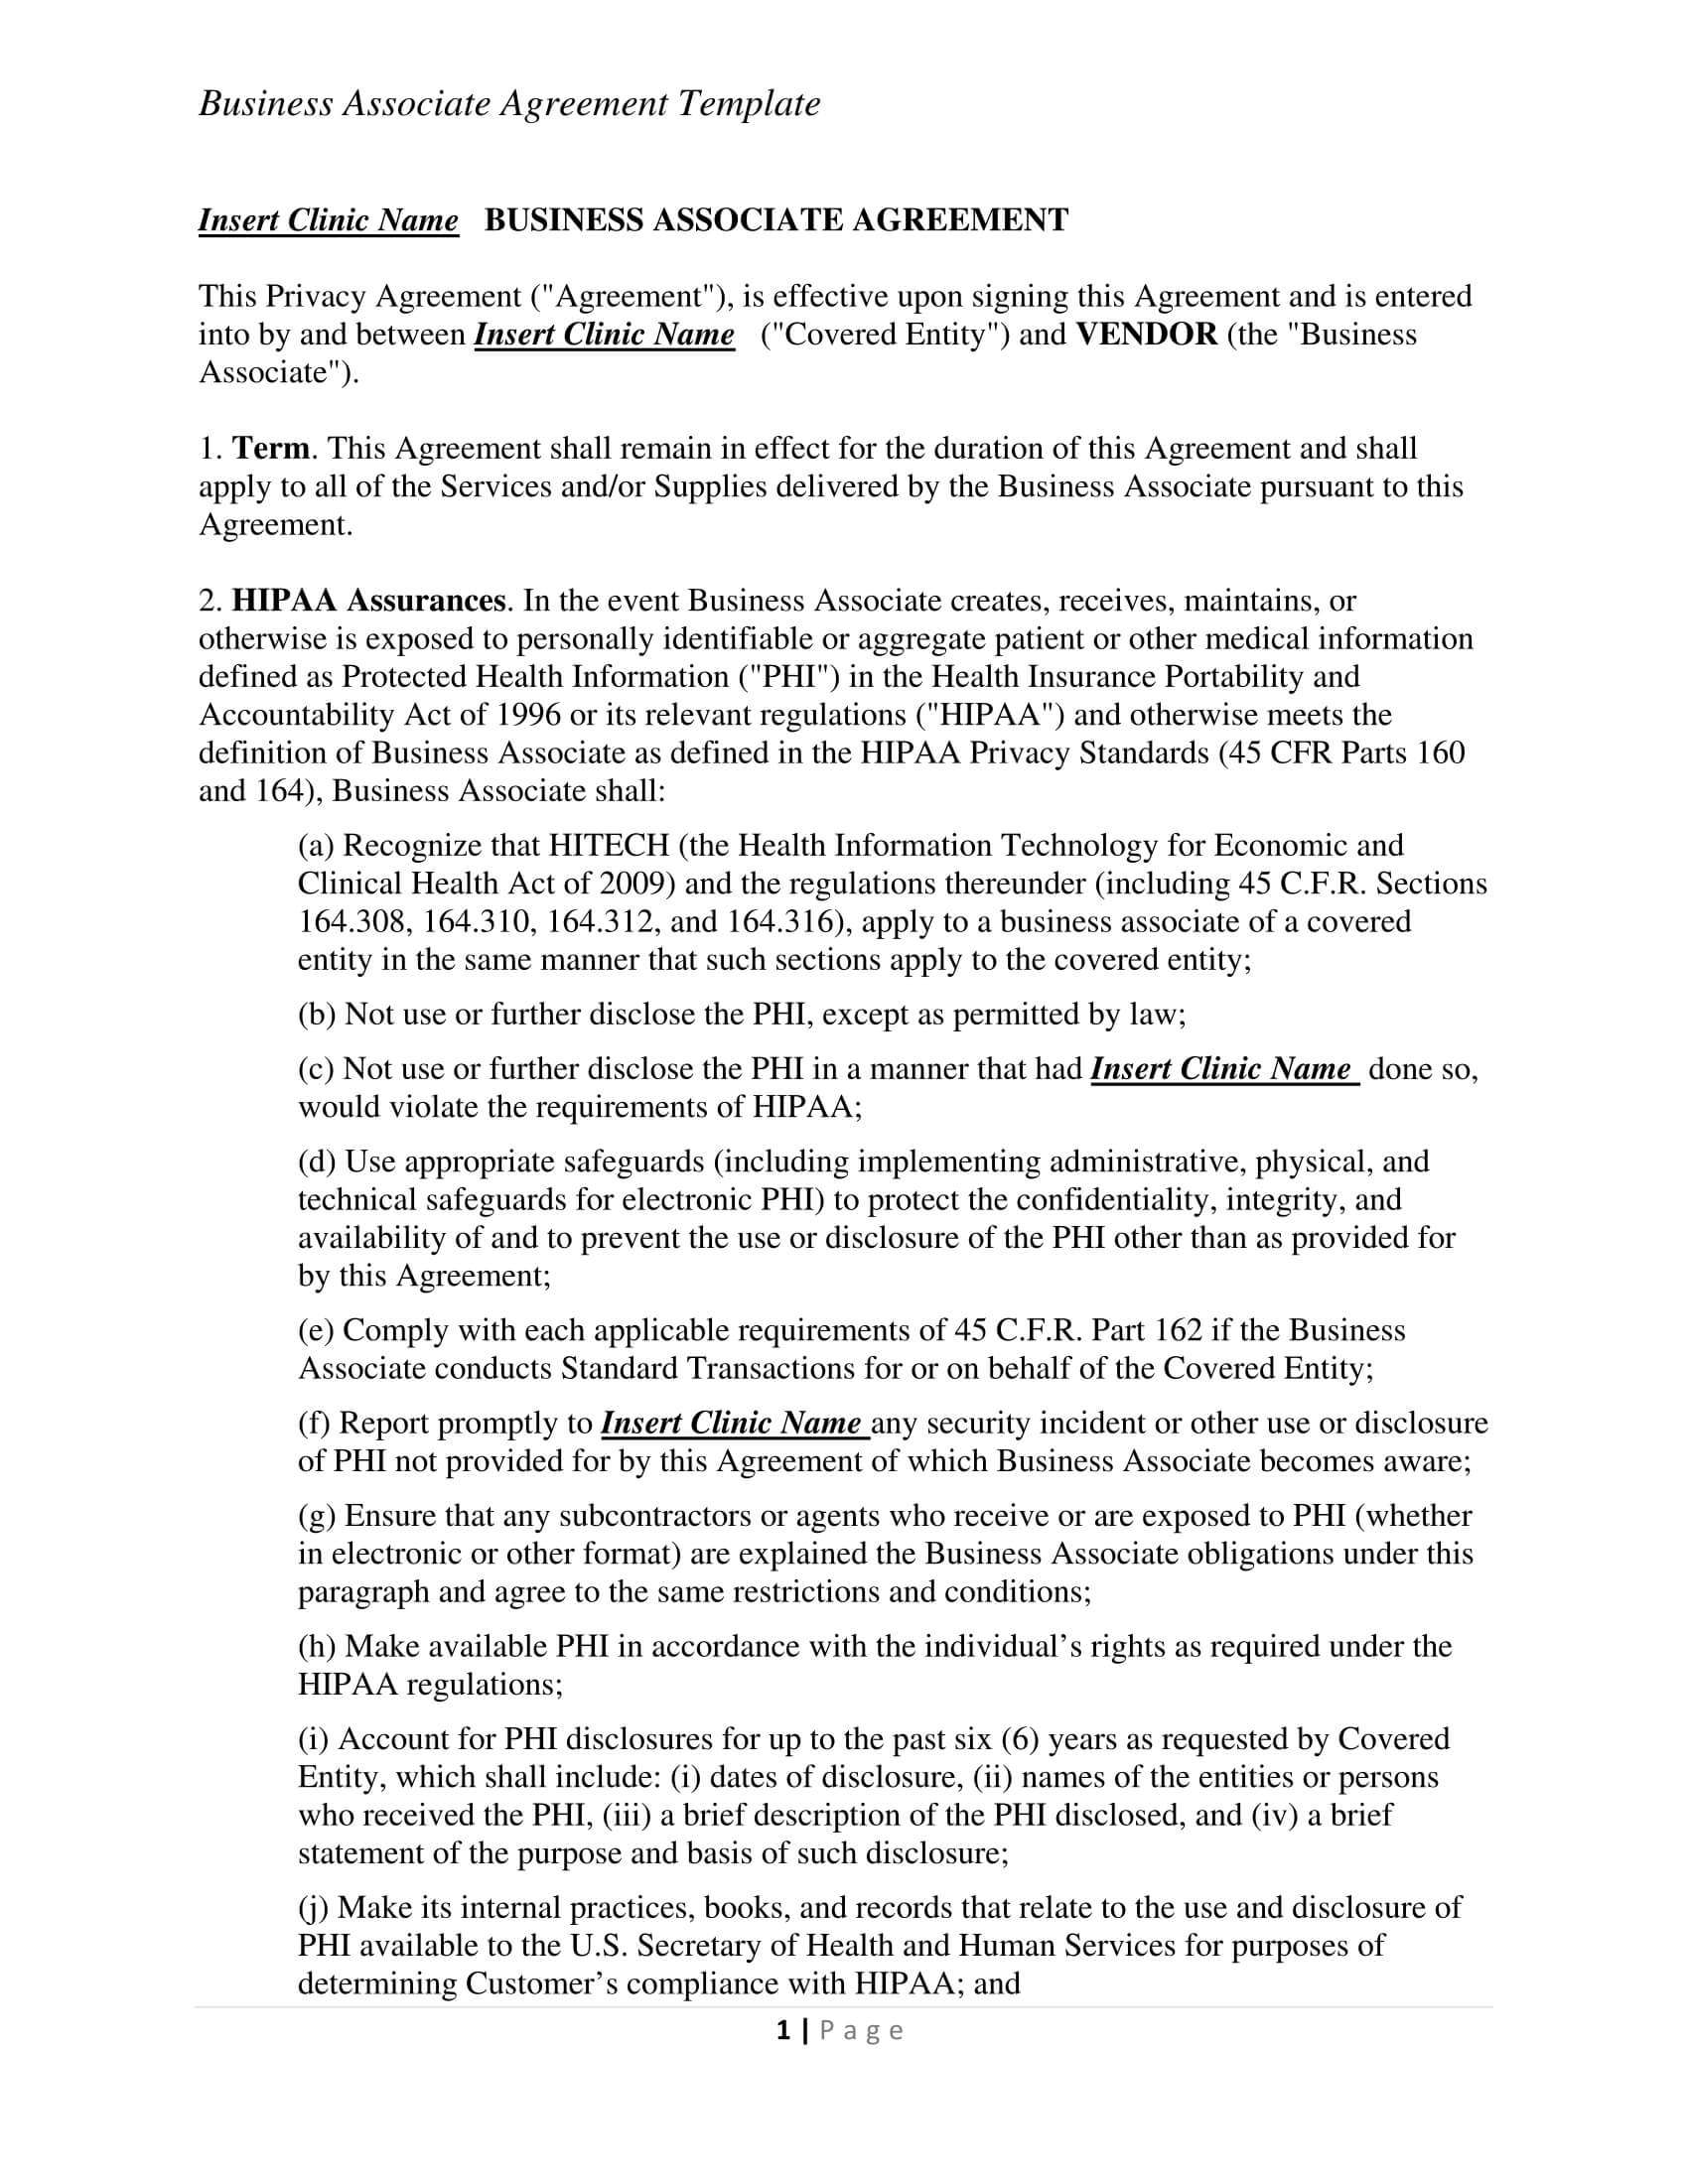 032 Legally Binding Contract Template Business Associate Throughout Business Associate Agreement Template